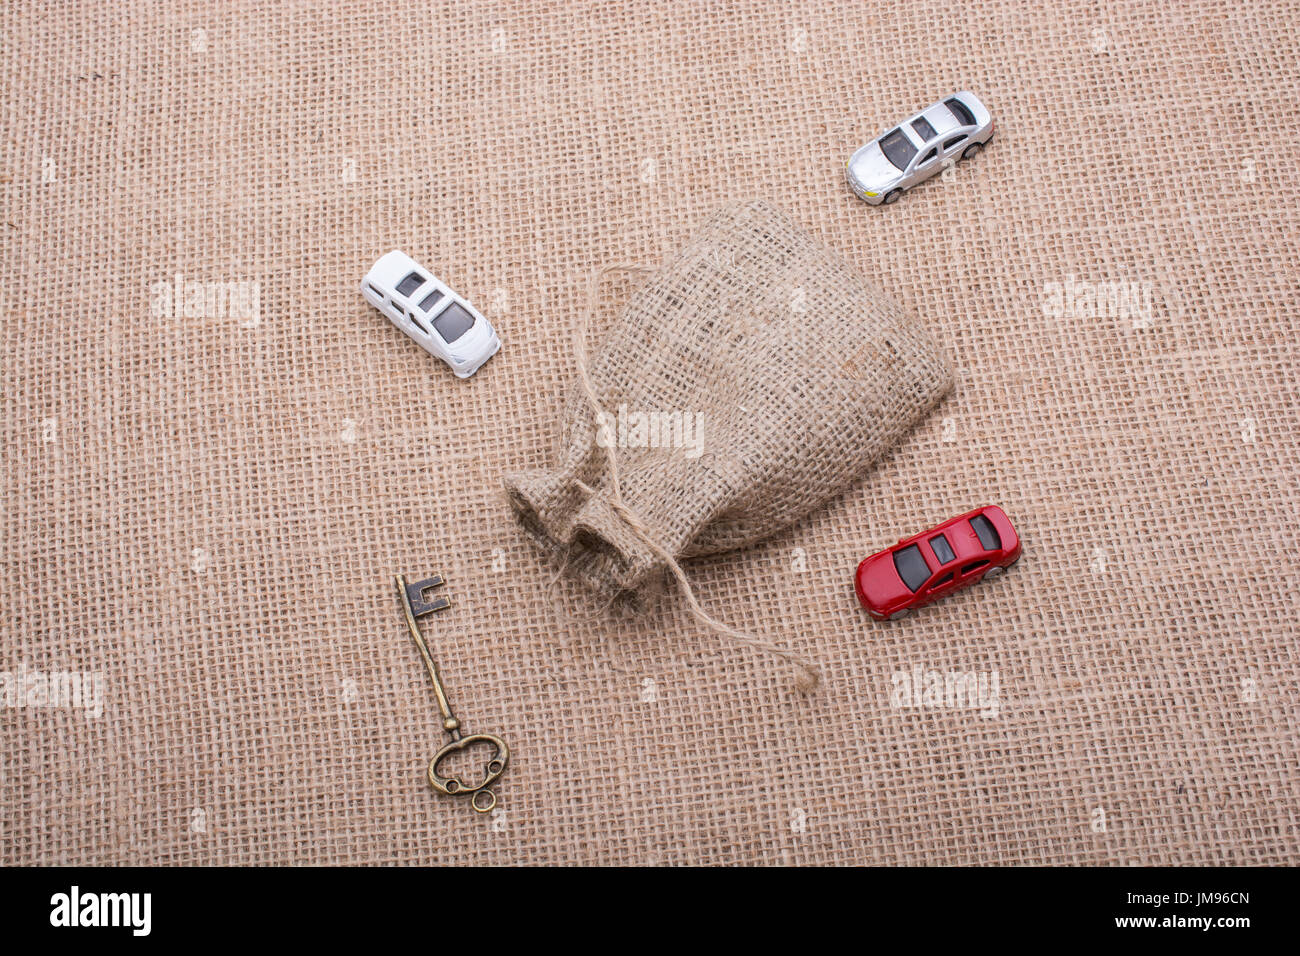 Key and toy cars around a sack on a linen canvas - Stock Image